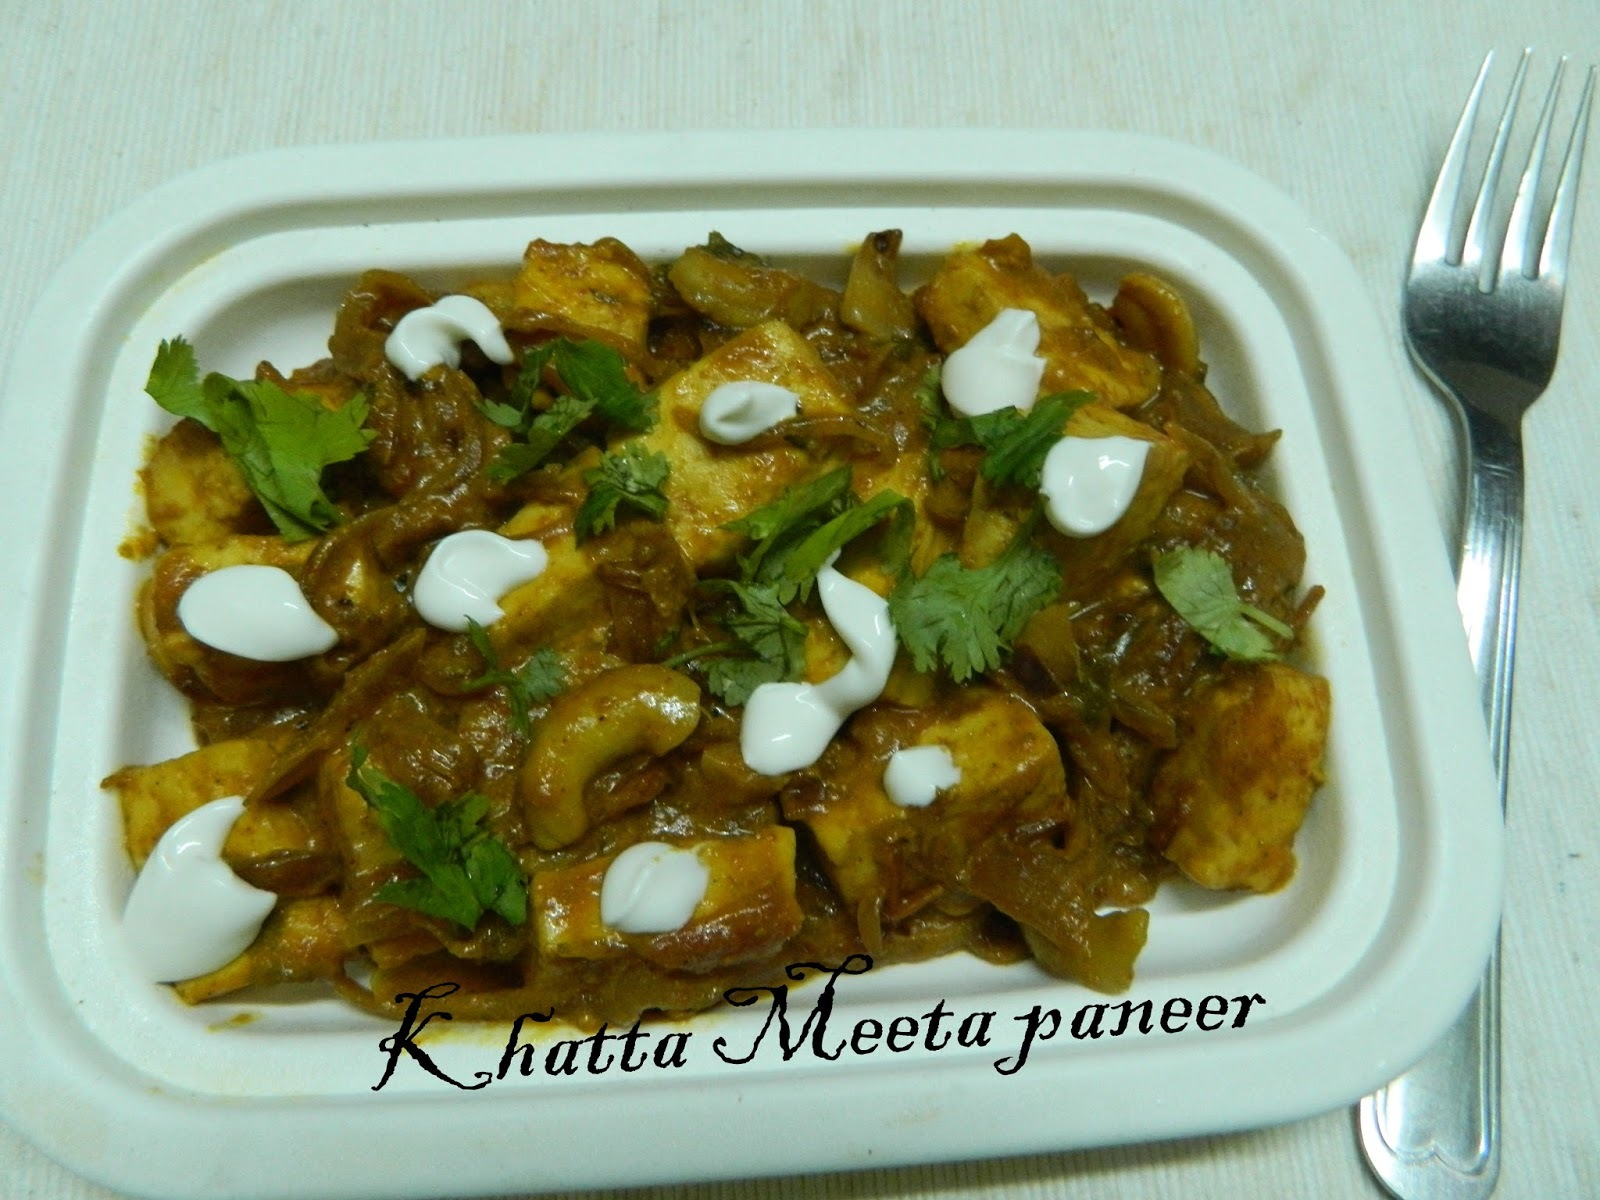 Khatta Meeta Paneer,Sweet and Sour Cottage Cheese